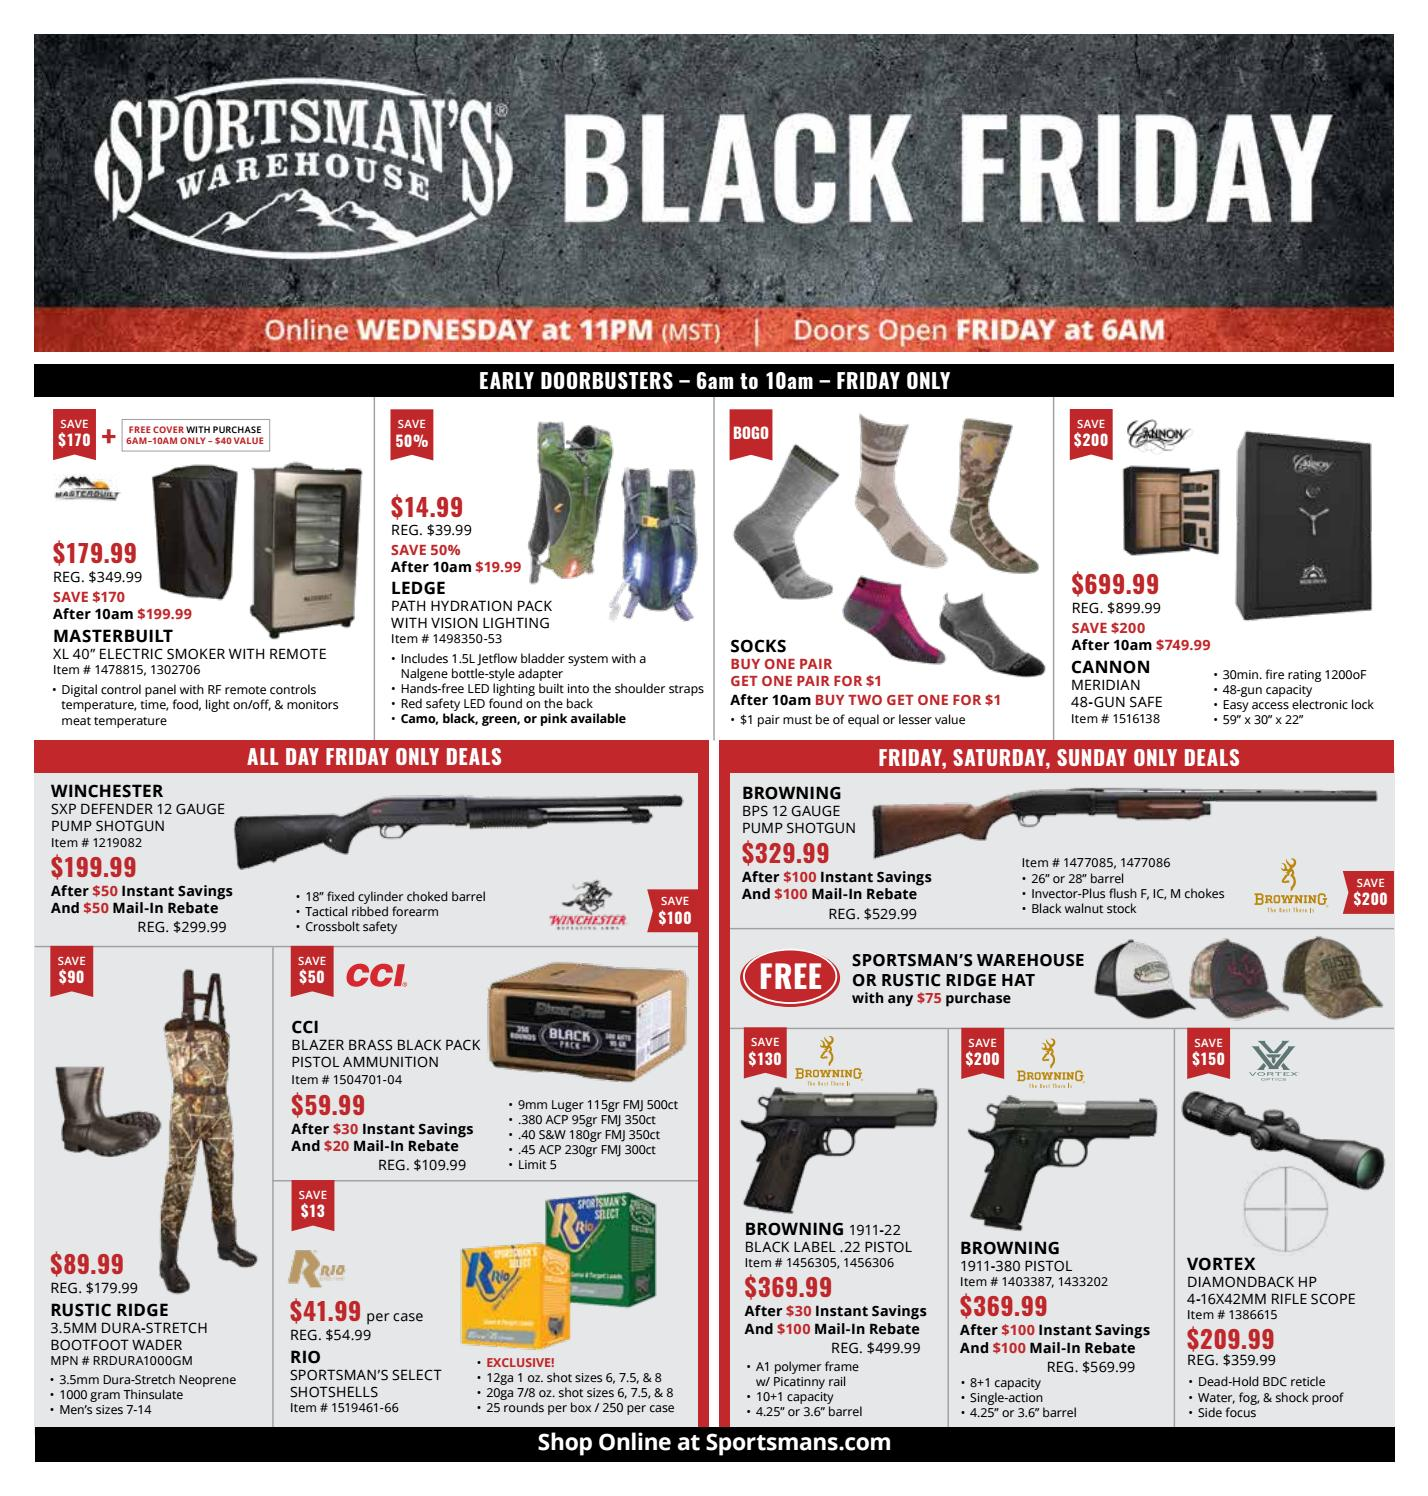 Sportsman's Warehouse Black Friday 112318 by Exchange